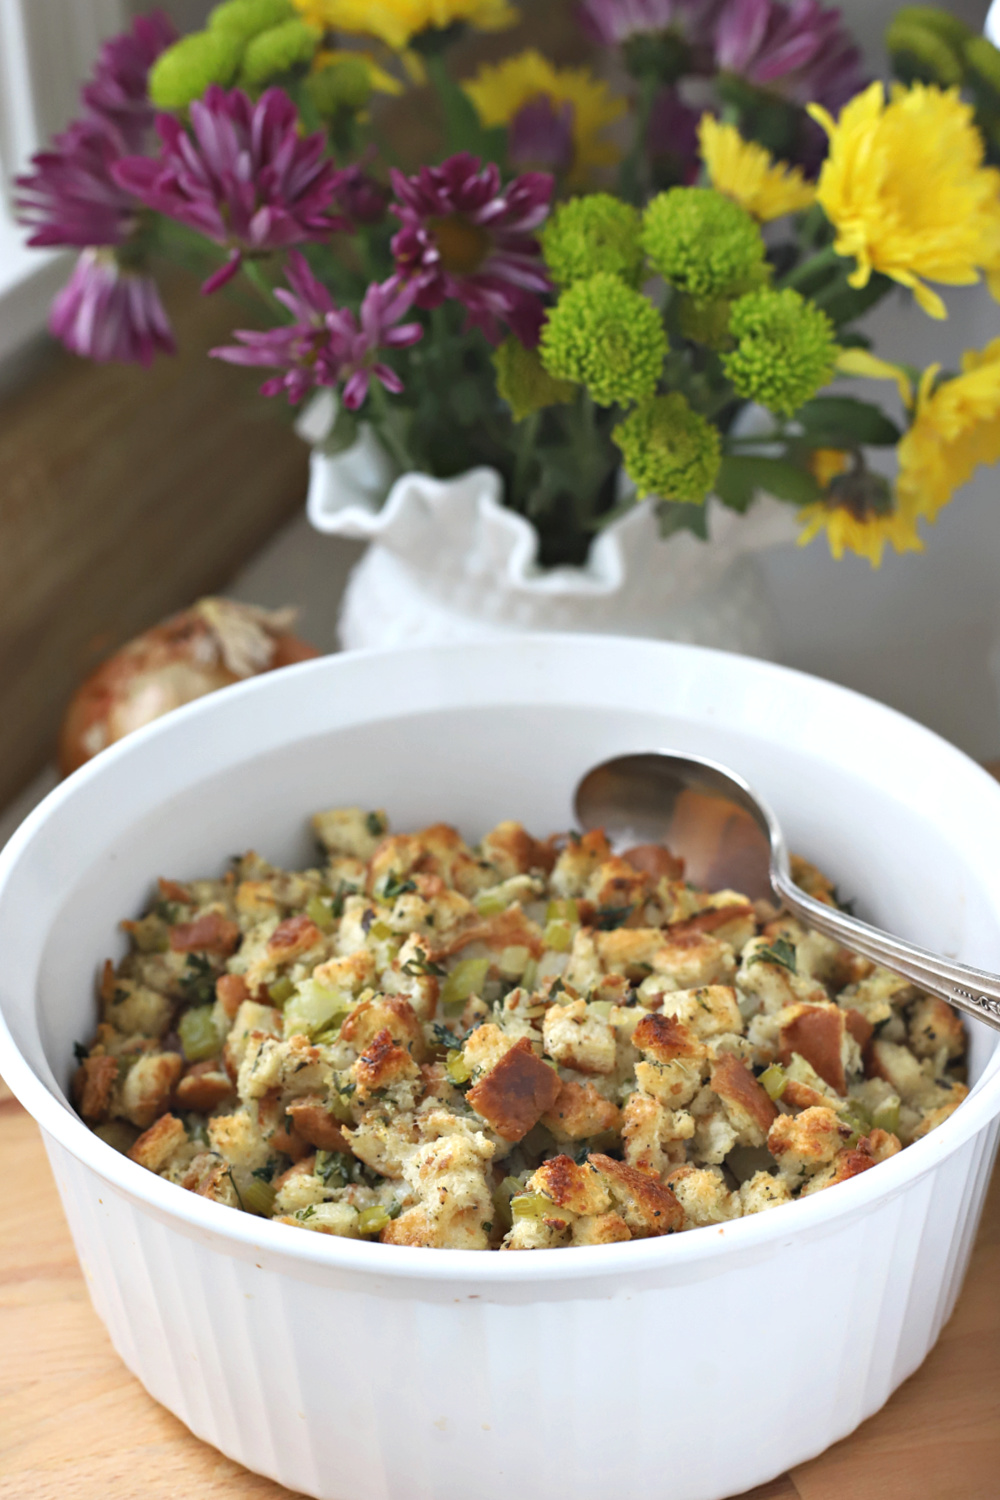 Whether you call it stuffing or filling, this easy recipe for Old Time Stuffing is full of flavor and a perfect side to compliment your Thanksgiving day turkey dinner.